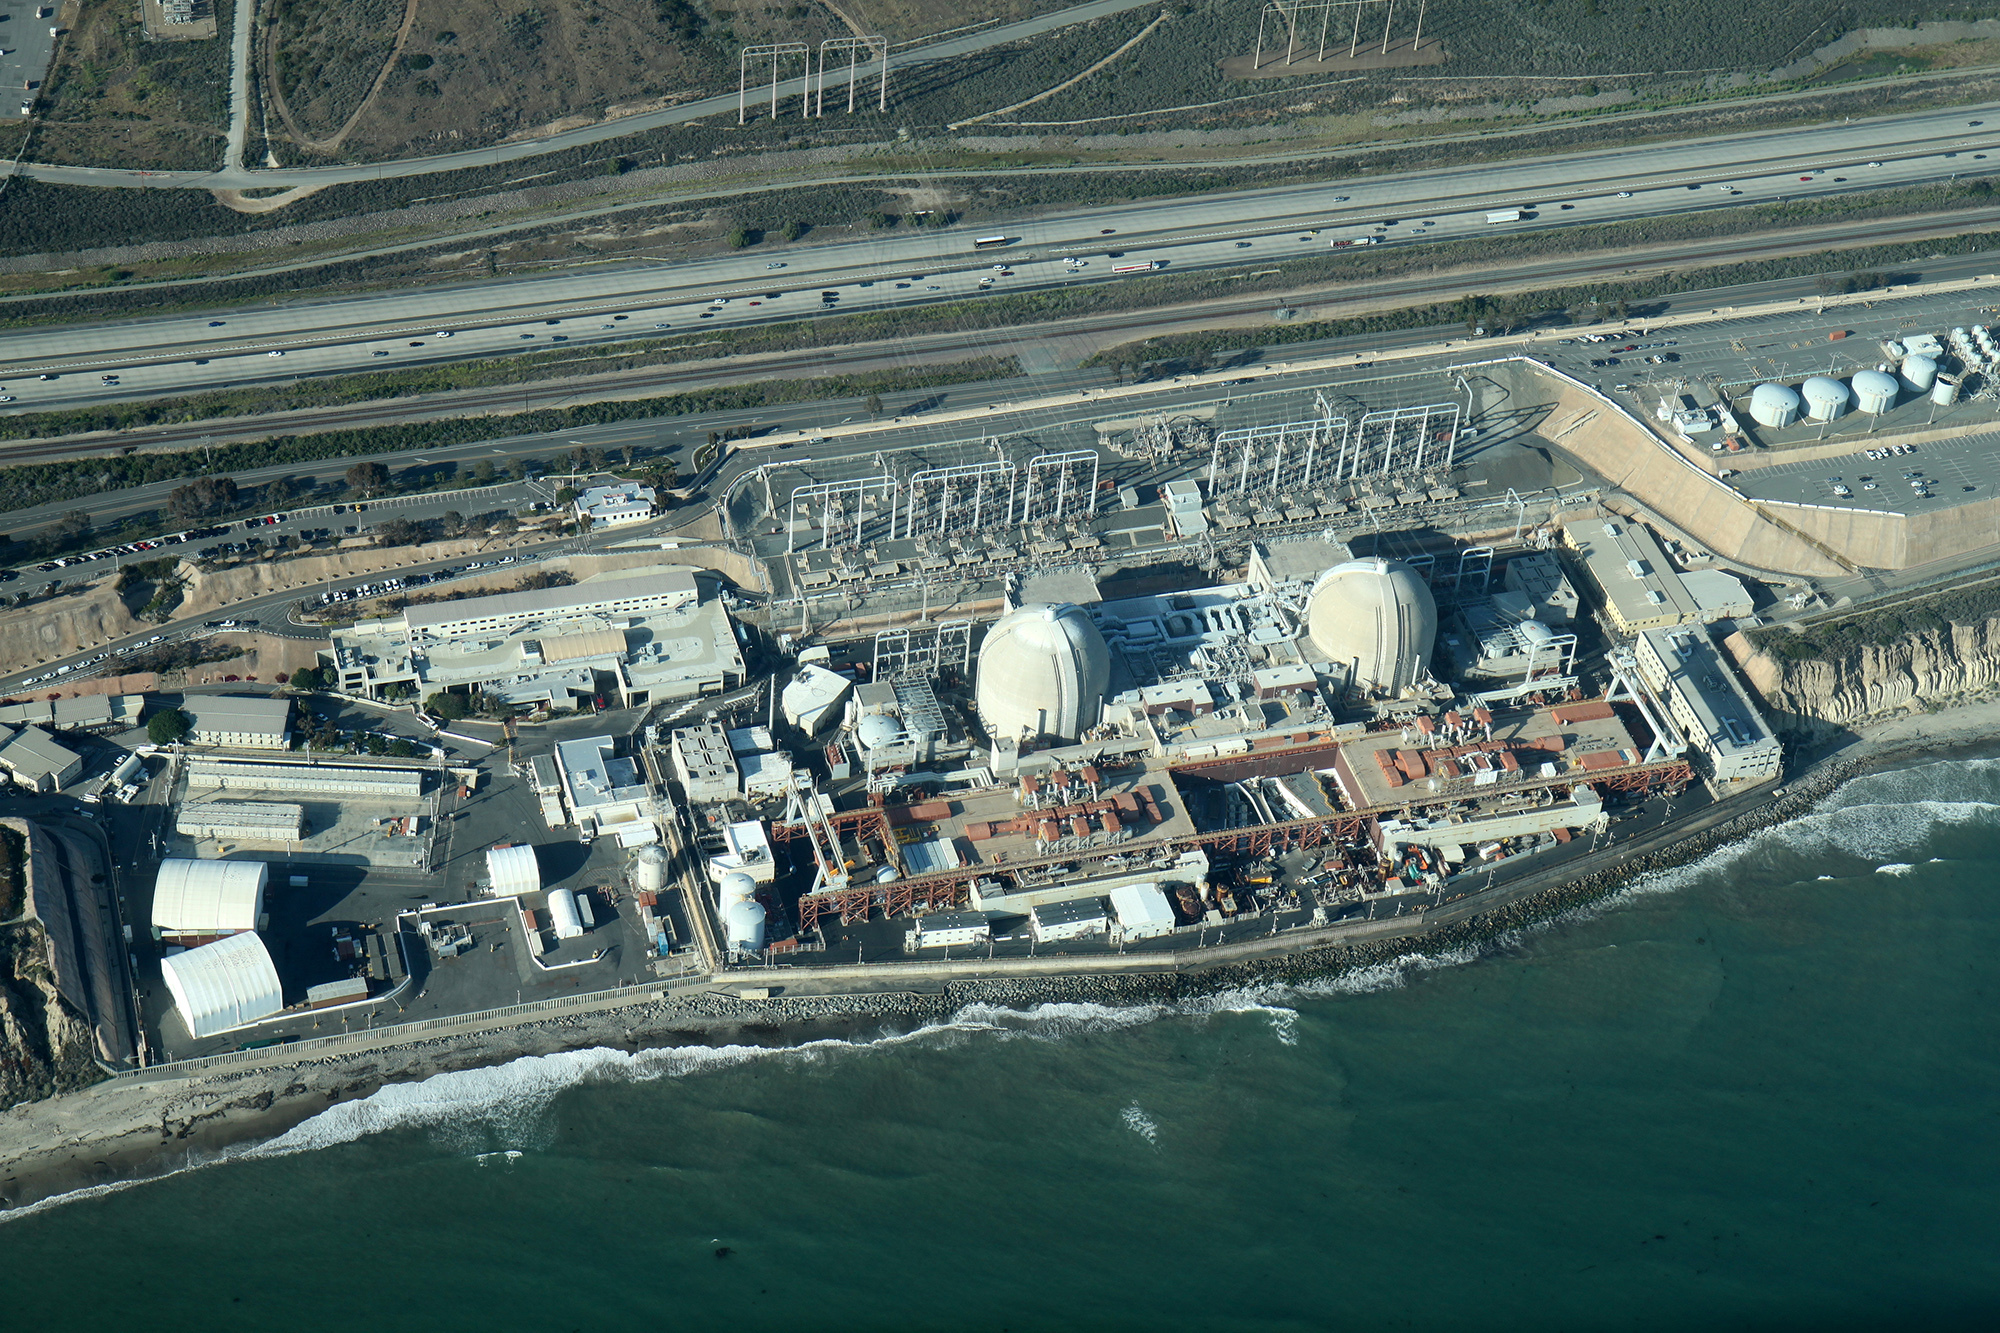 Facilities like power stations are often built on coasts to take advantage of an abundant supply of coolant or water for heating.